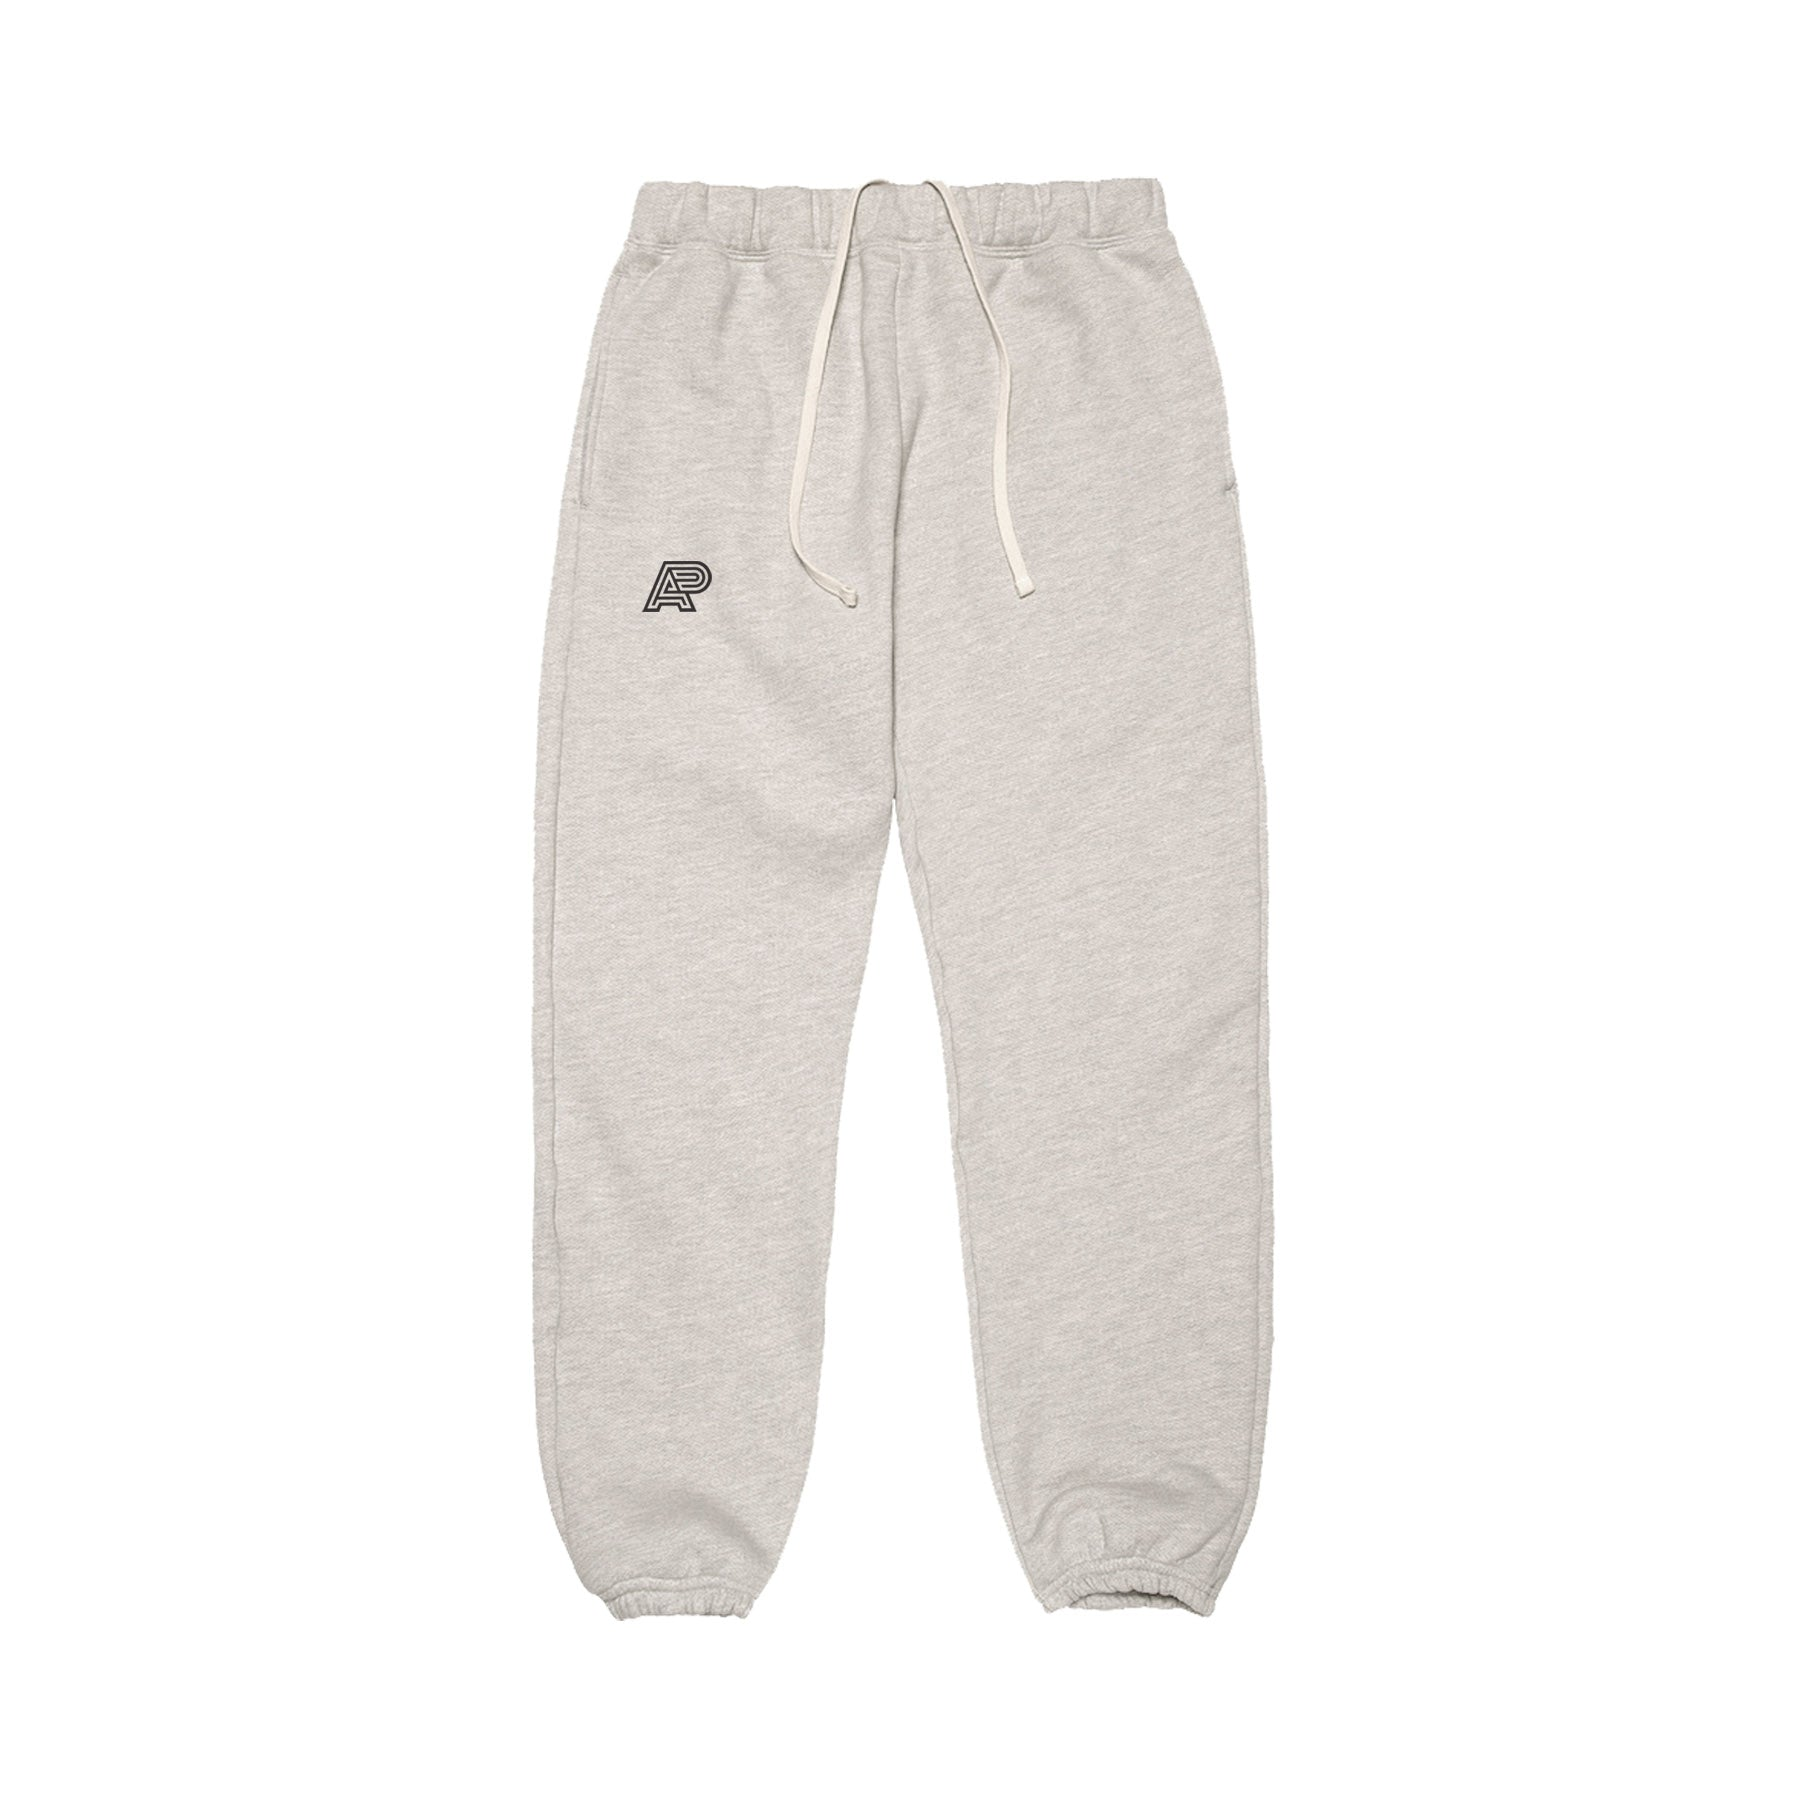 A&P FLEECE SWEAT PANTS